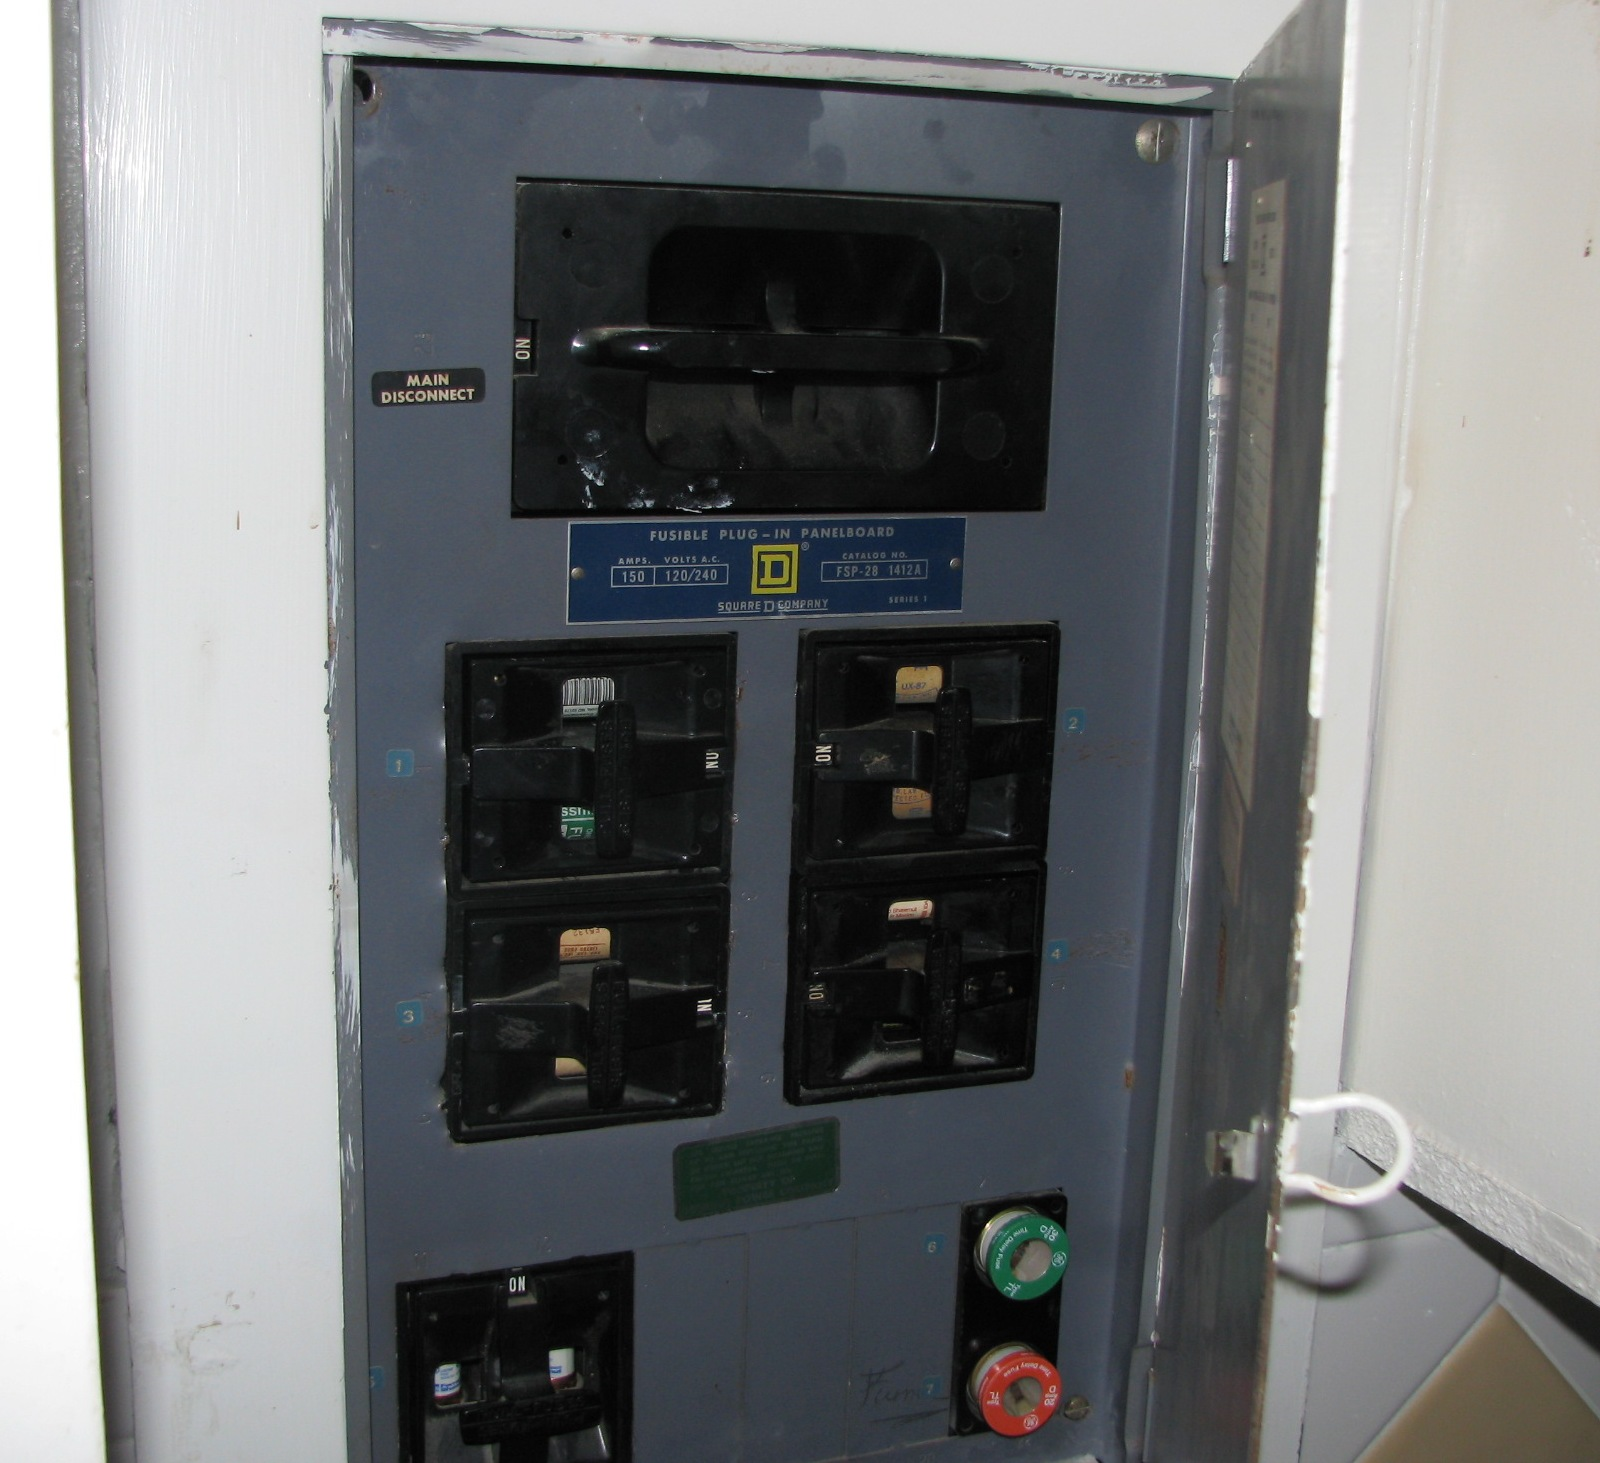 Fuses In Mobile Home Breaker Box Wiring Diagrams Outside Disconnect Diagram House Fuse Panel Cabinet Free Engine Image For User Clayton Typical